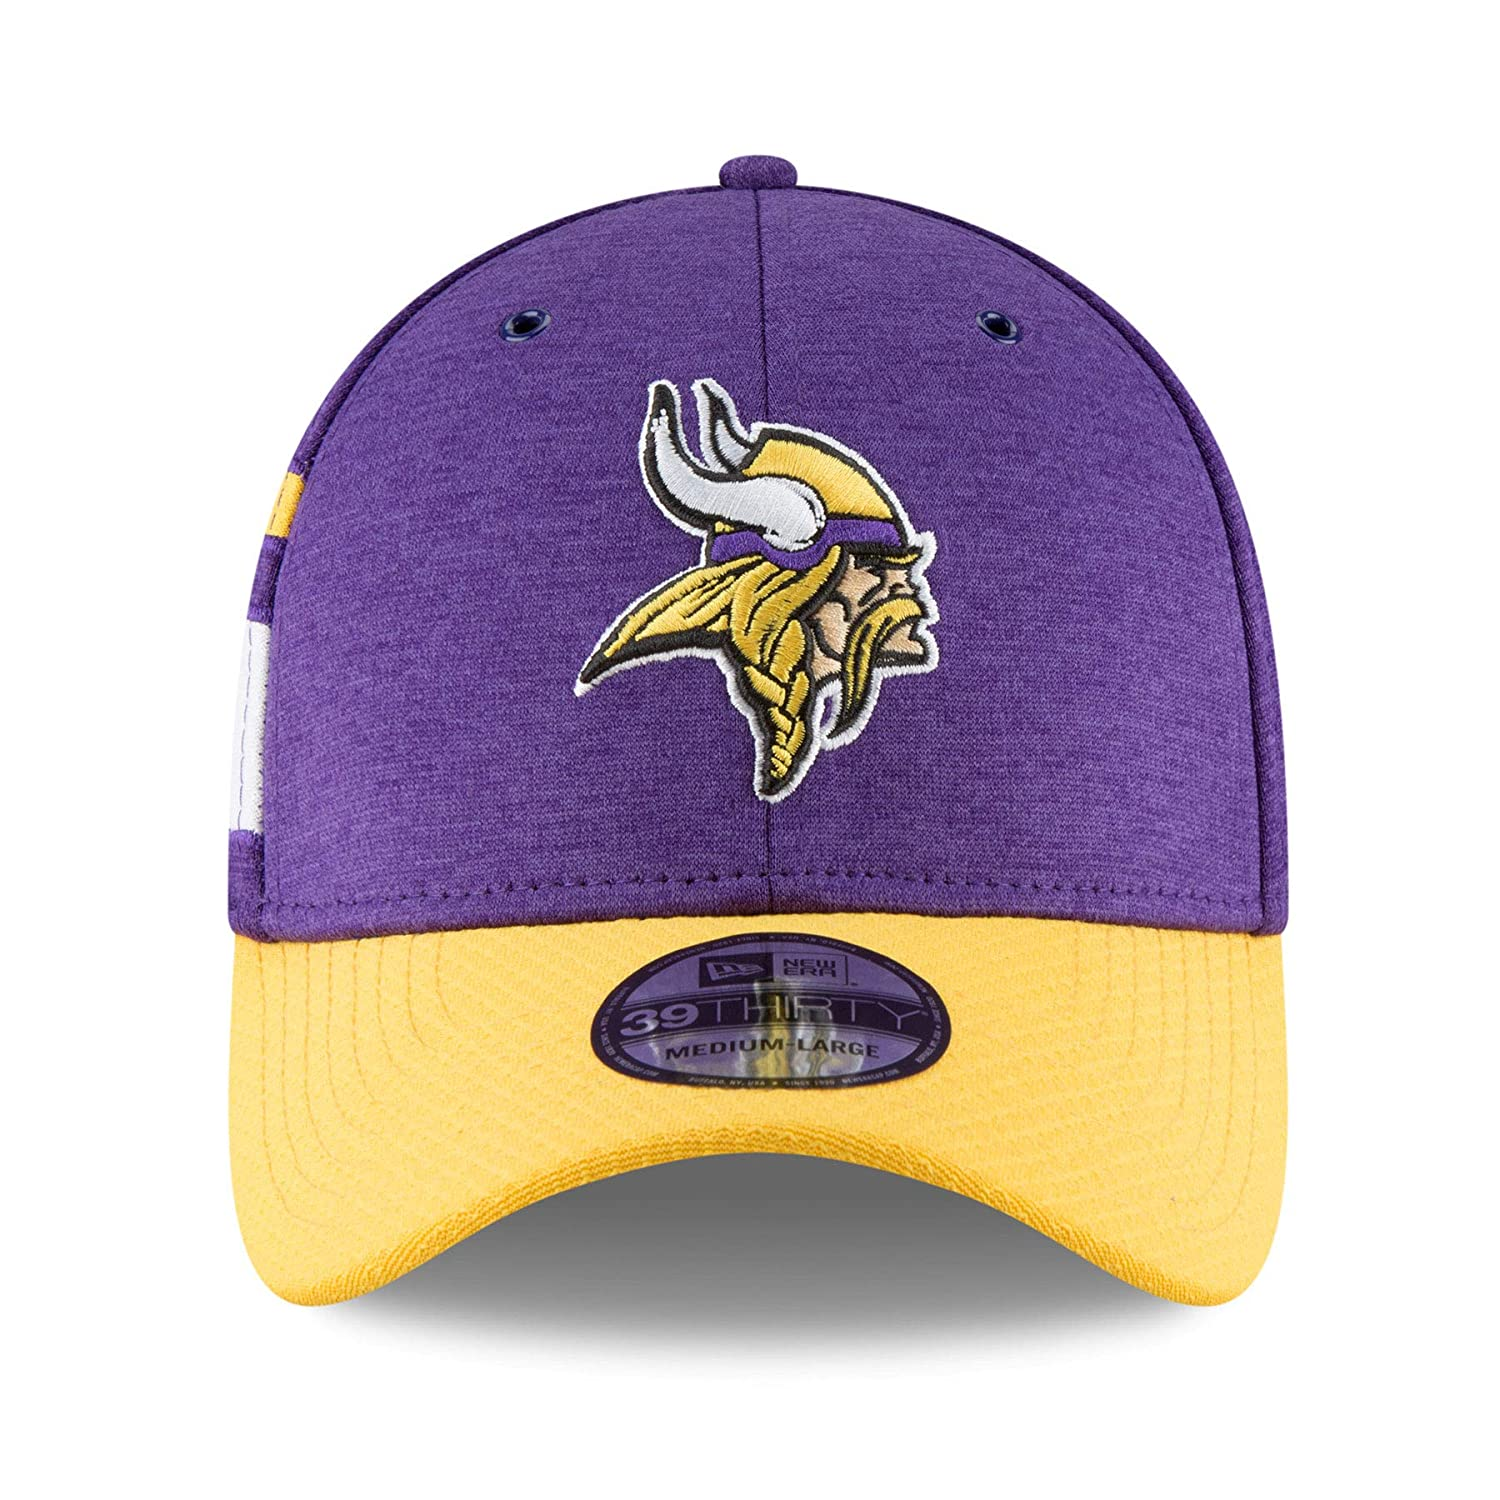 24389270581 Amazon.com  New Era Men s Minnesota Vikings 2018 NFL On Field Sideline Hat   Clothing